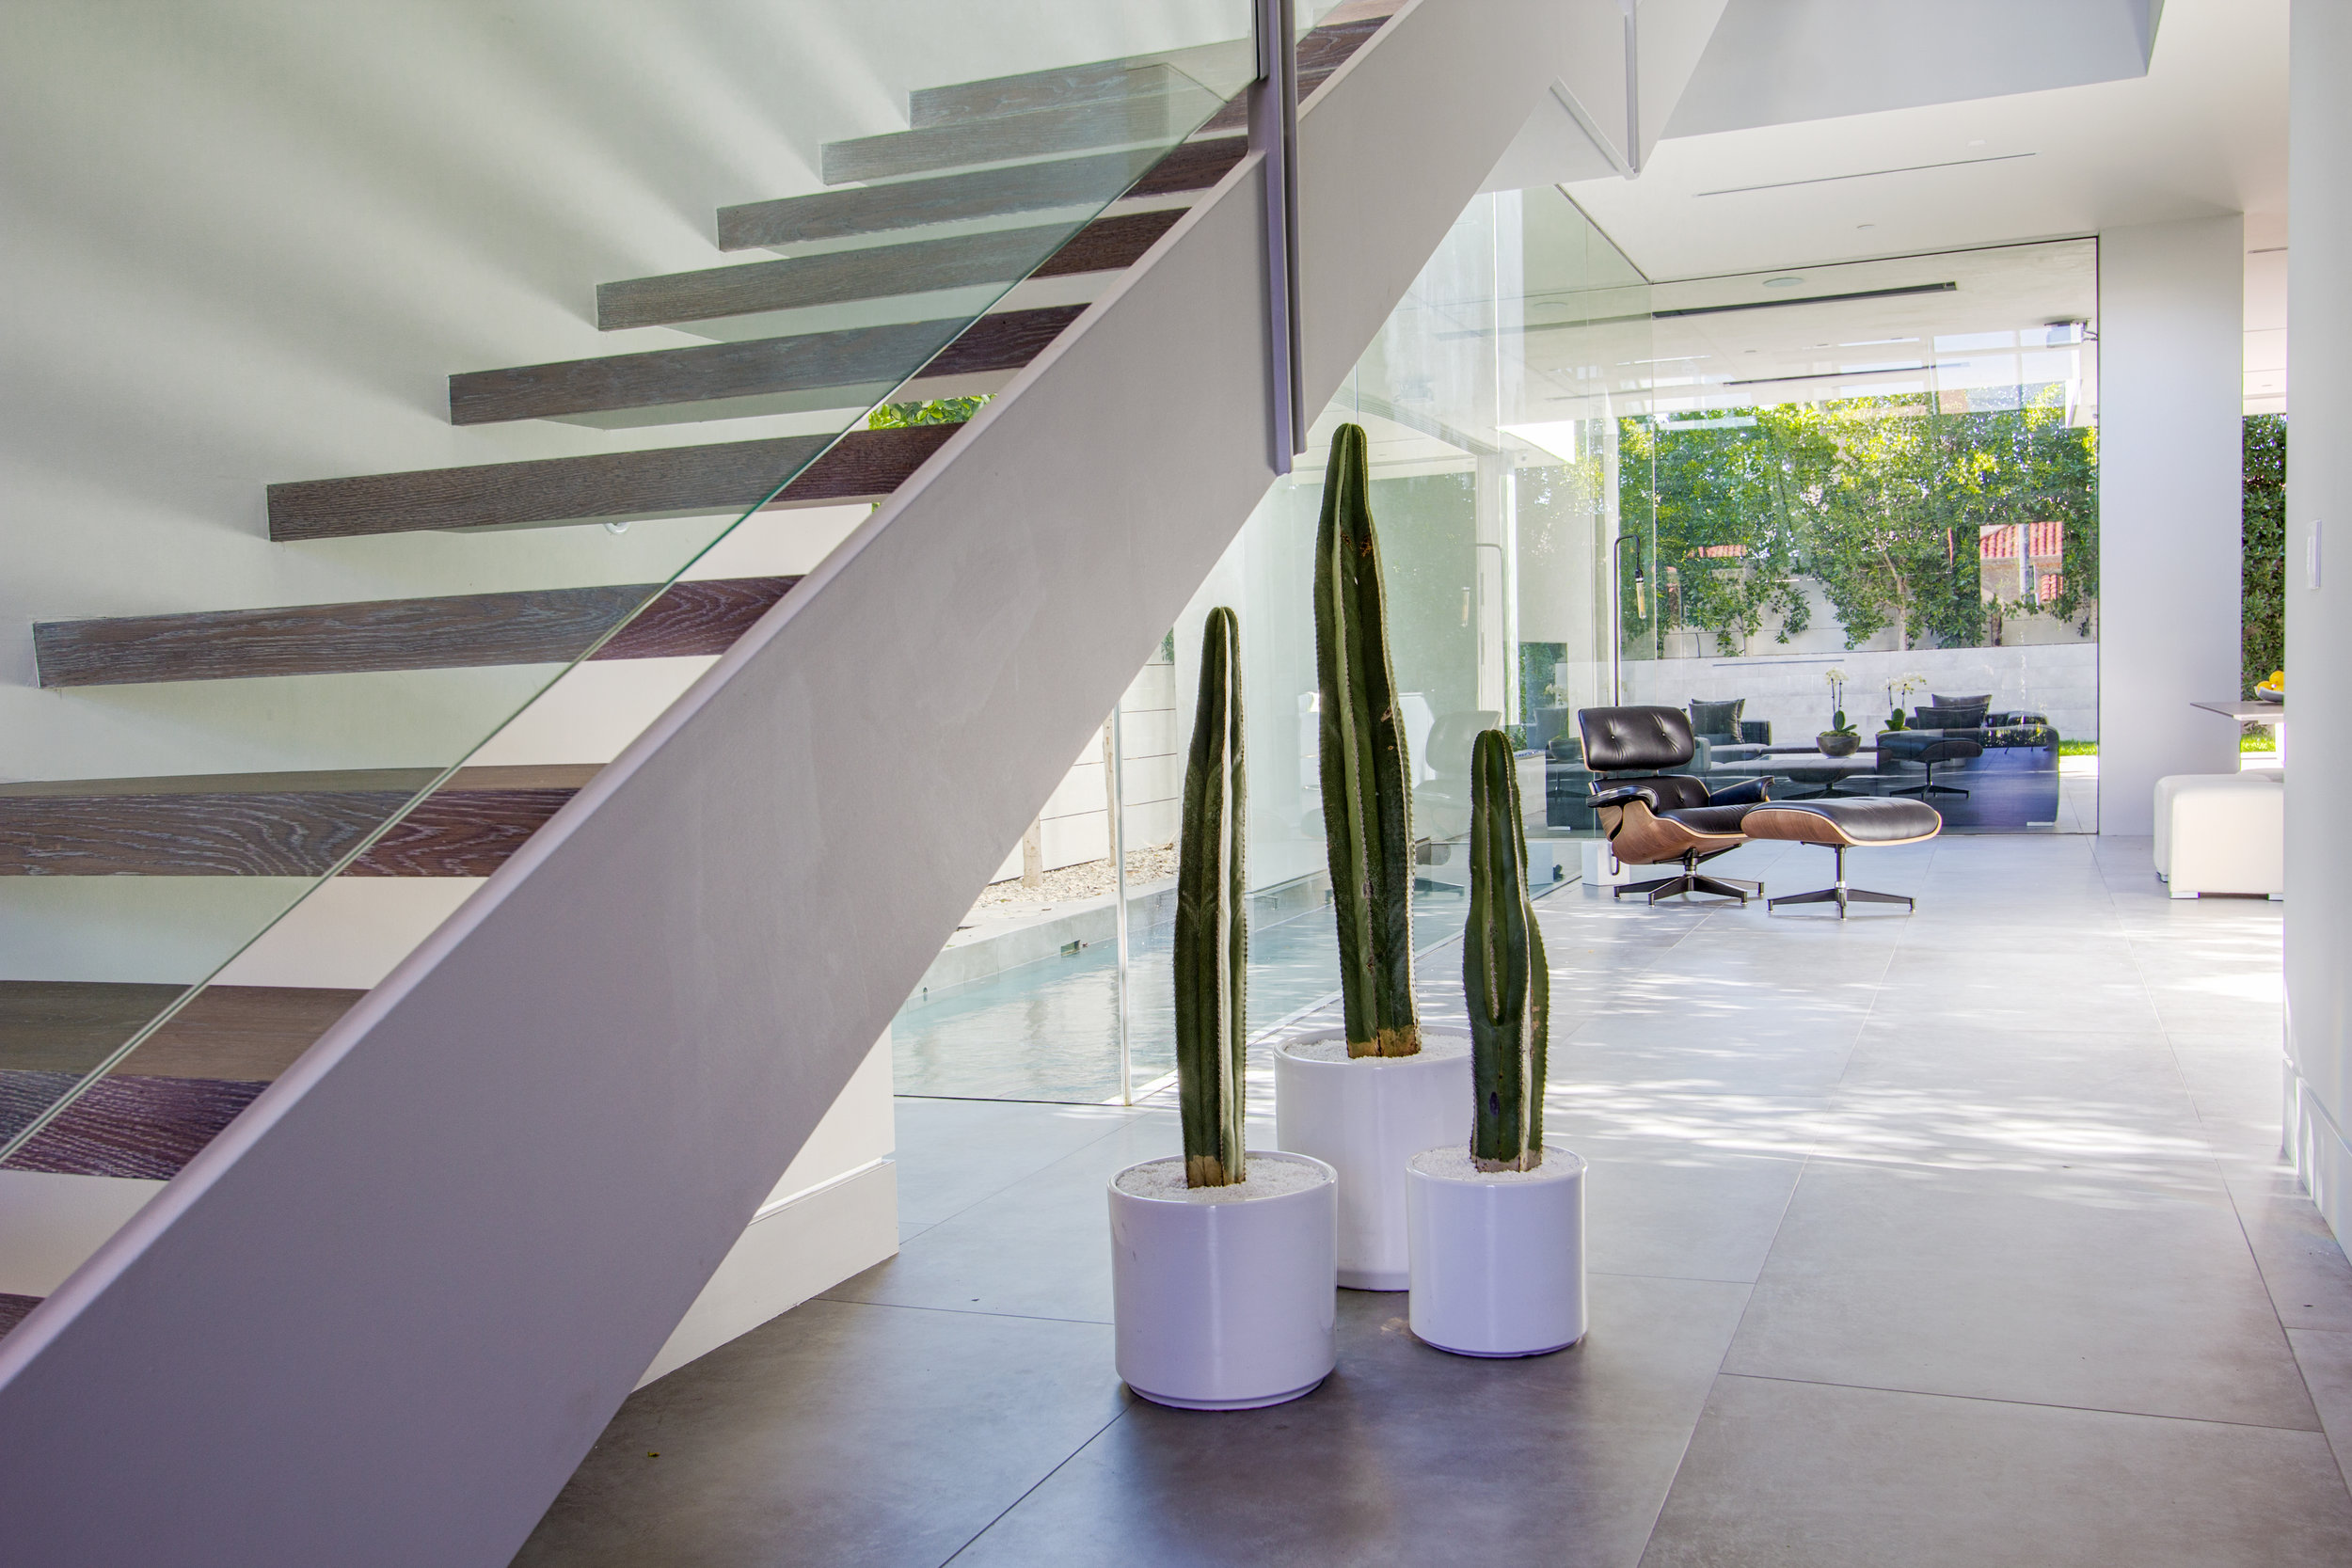 479_S Holt Ave_Modern_House_Entryway_1.jpg